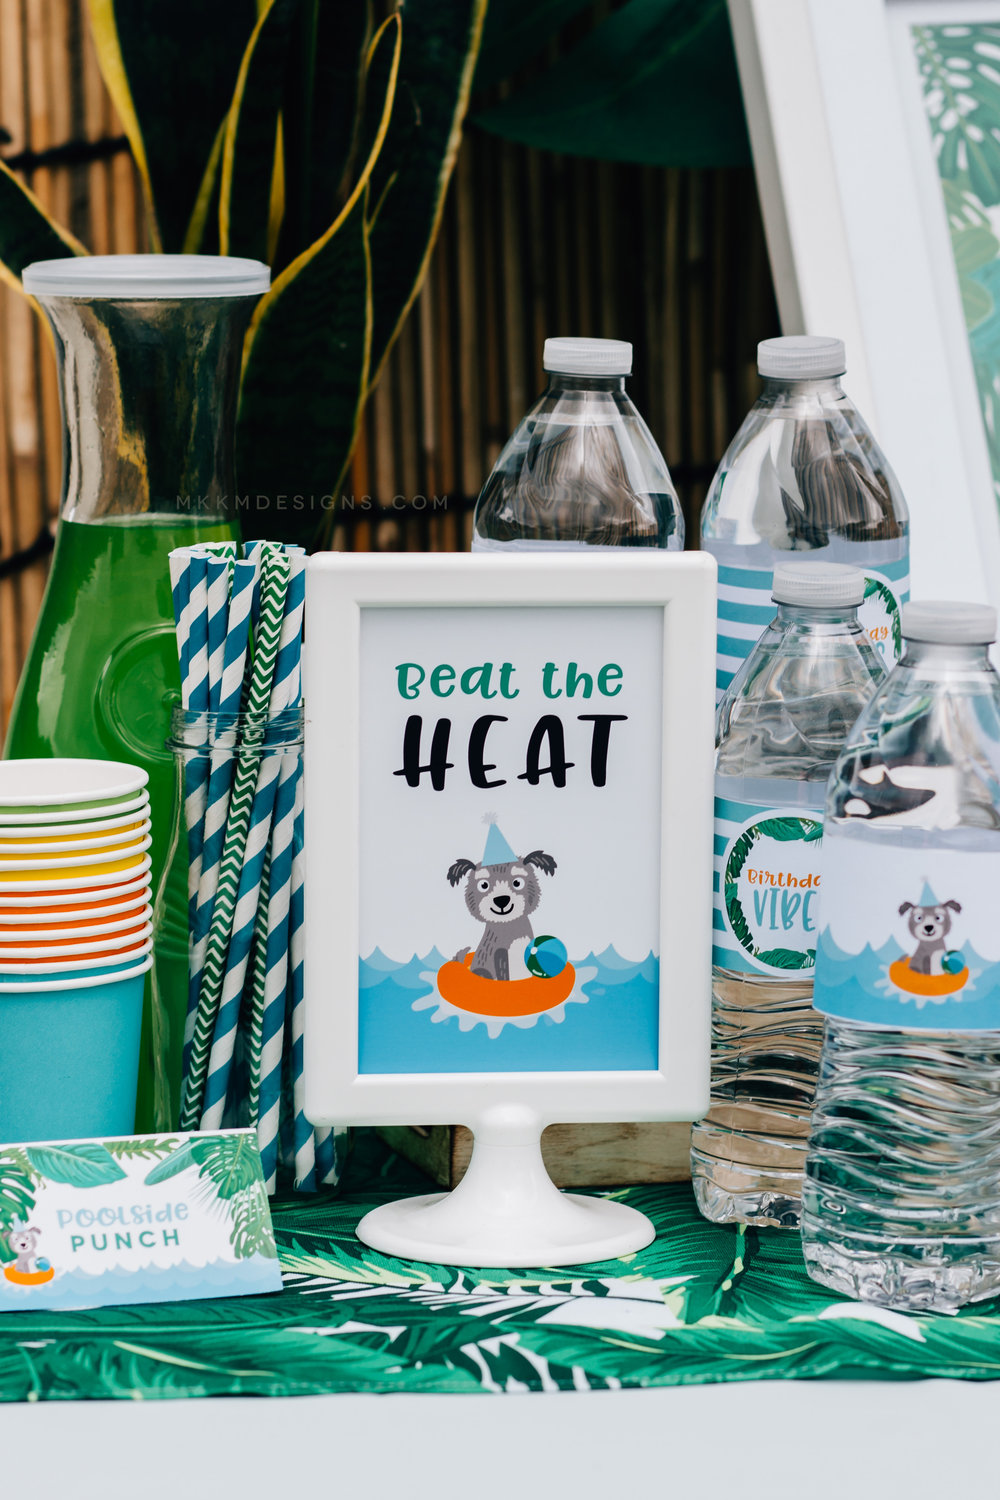 Beat the Heat drink sign from a puppy party // designs from shopmkkm.com